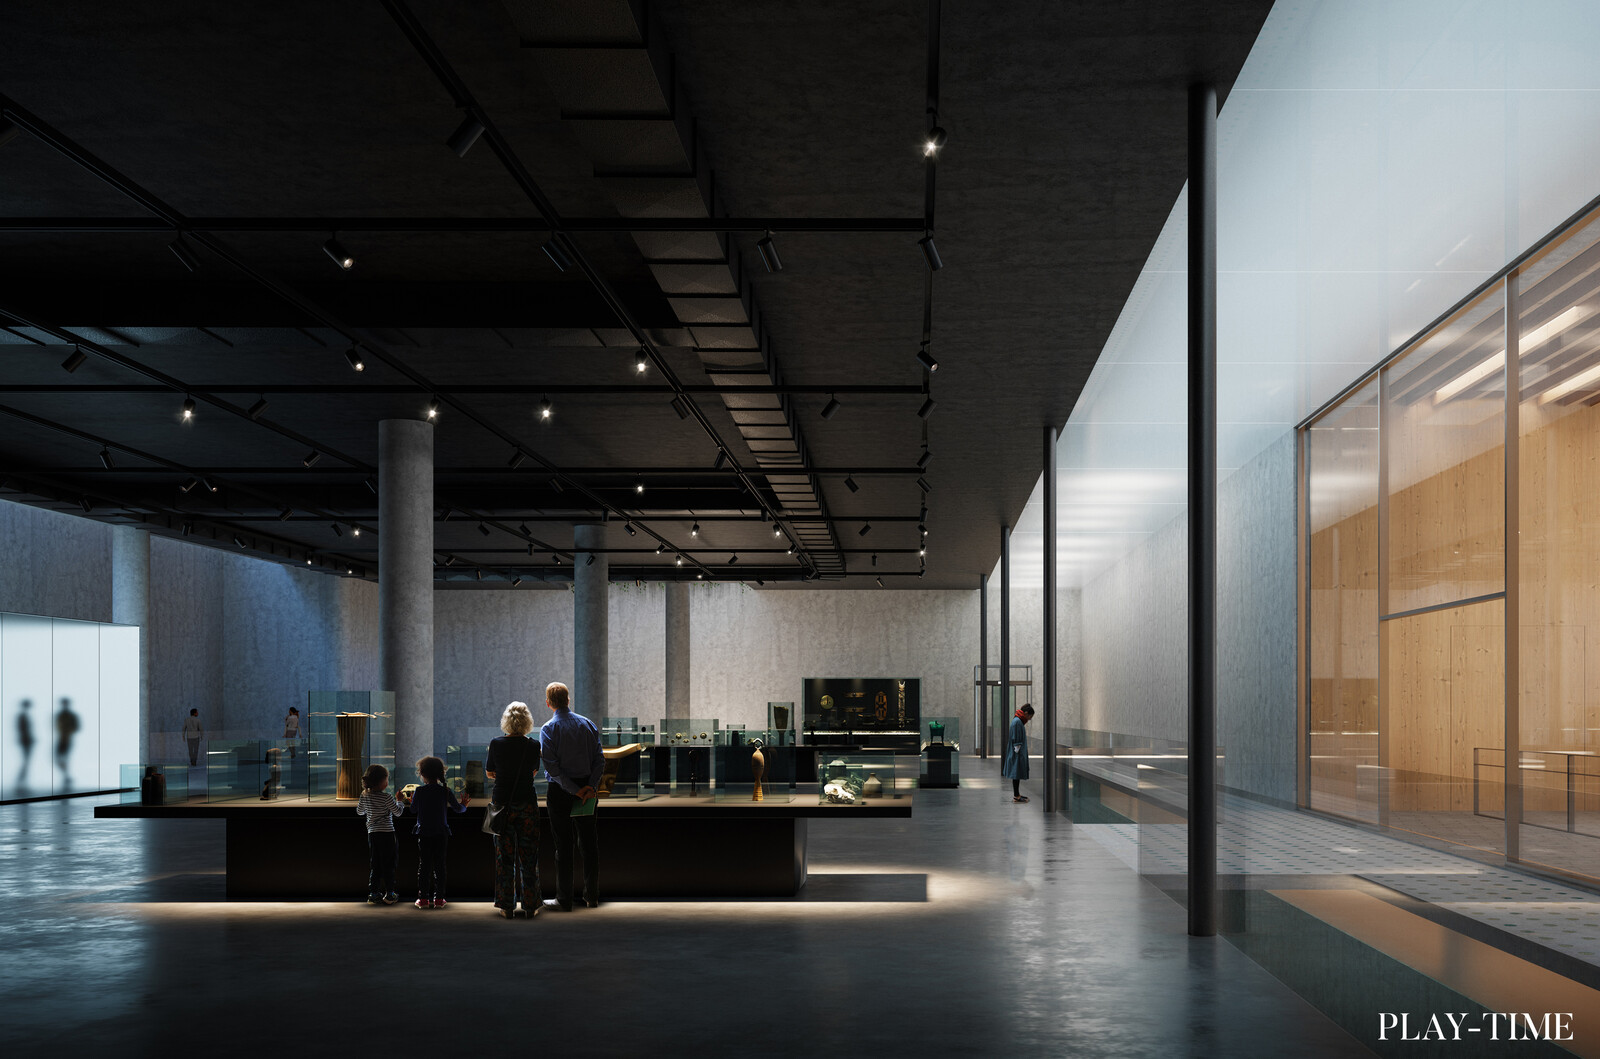 MUPAC Museum in Santander. Designed by Mateo Arquitectura. Image by Play-time